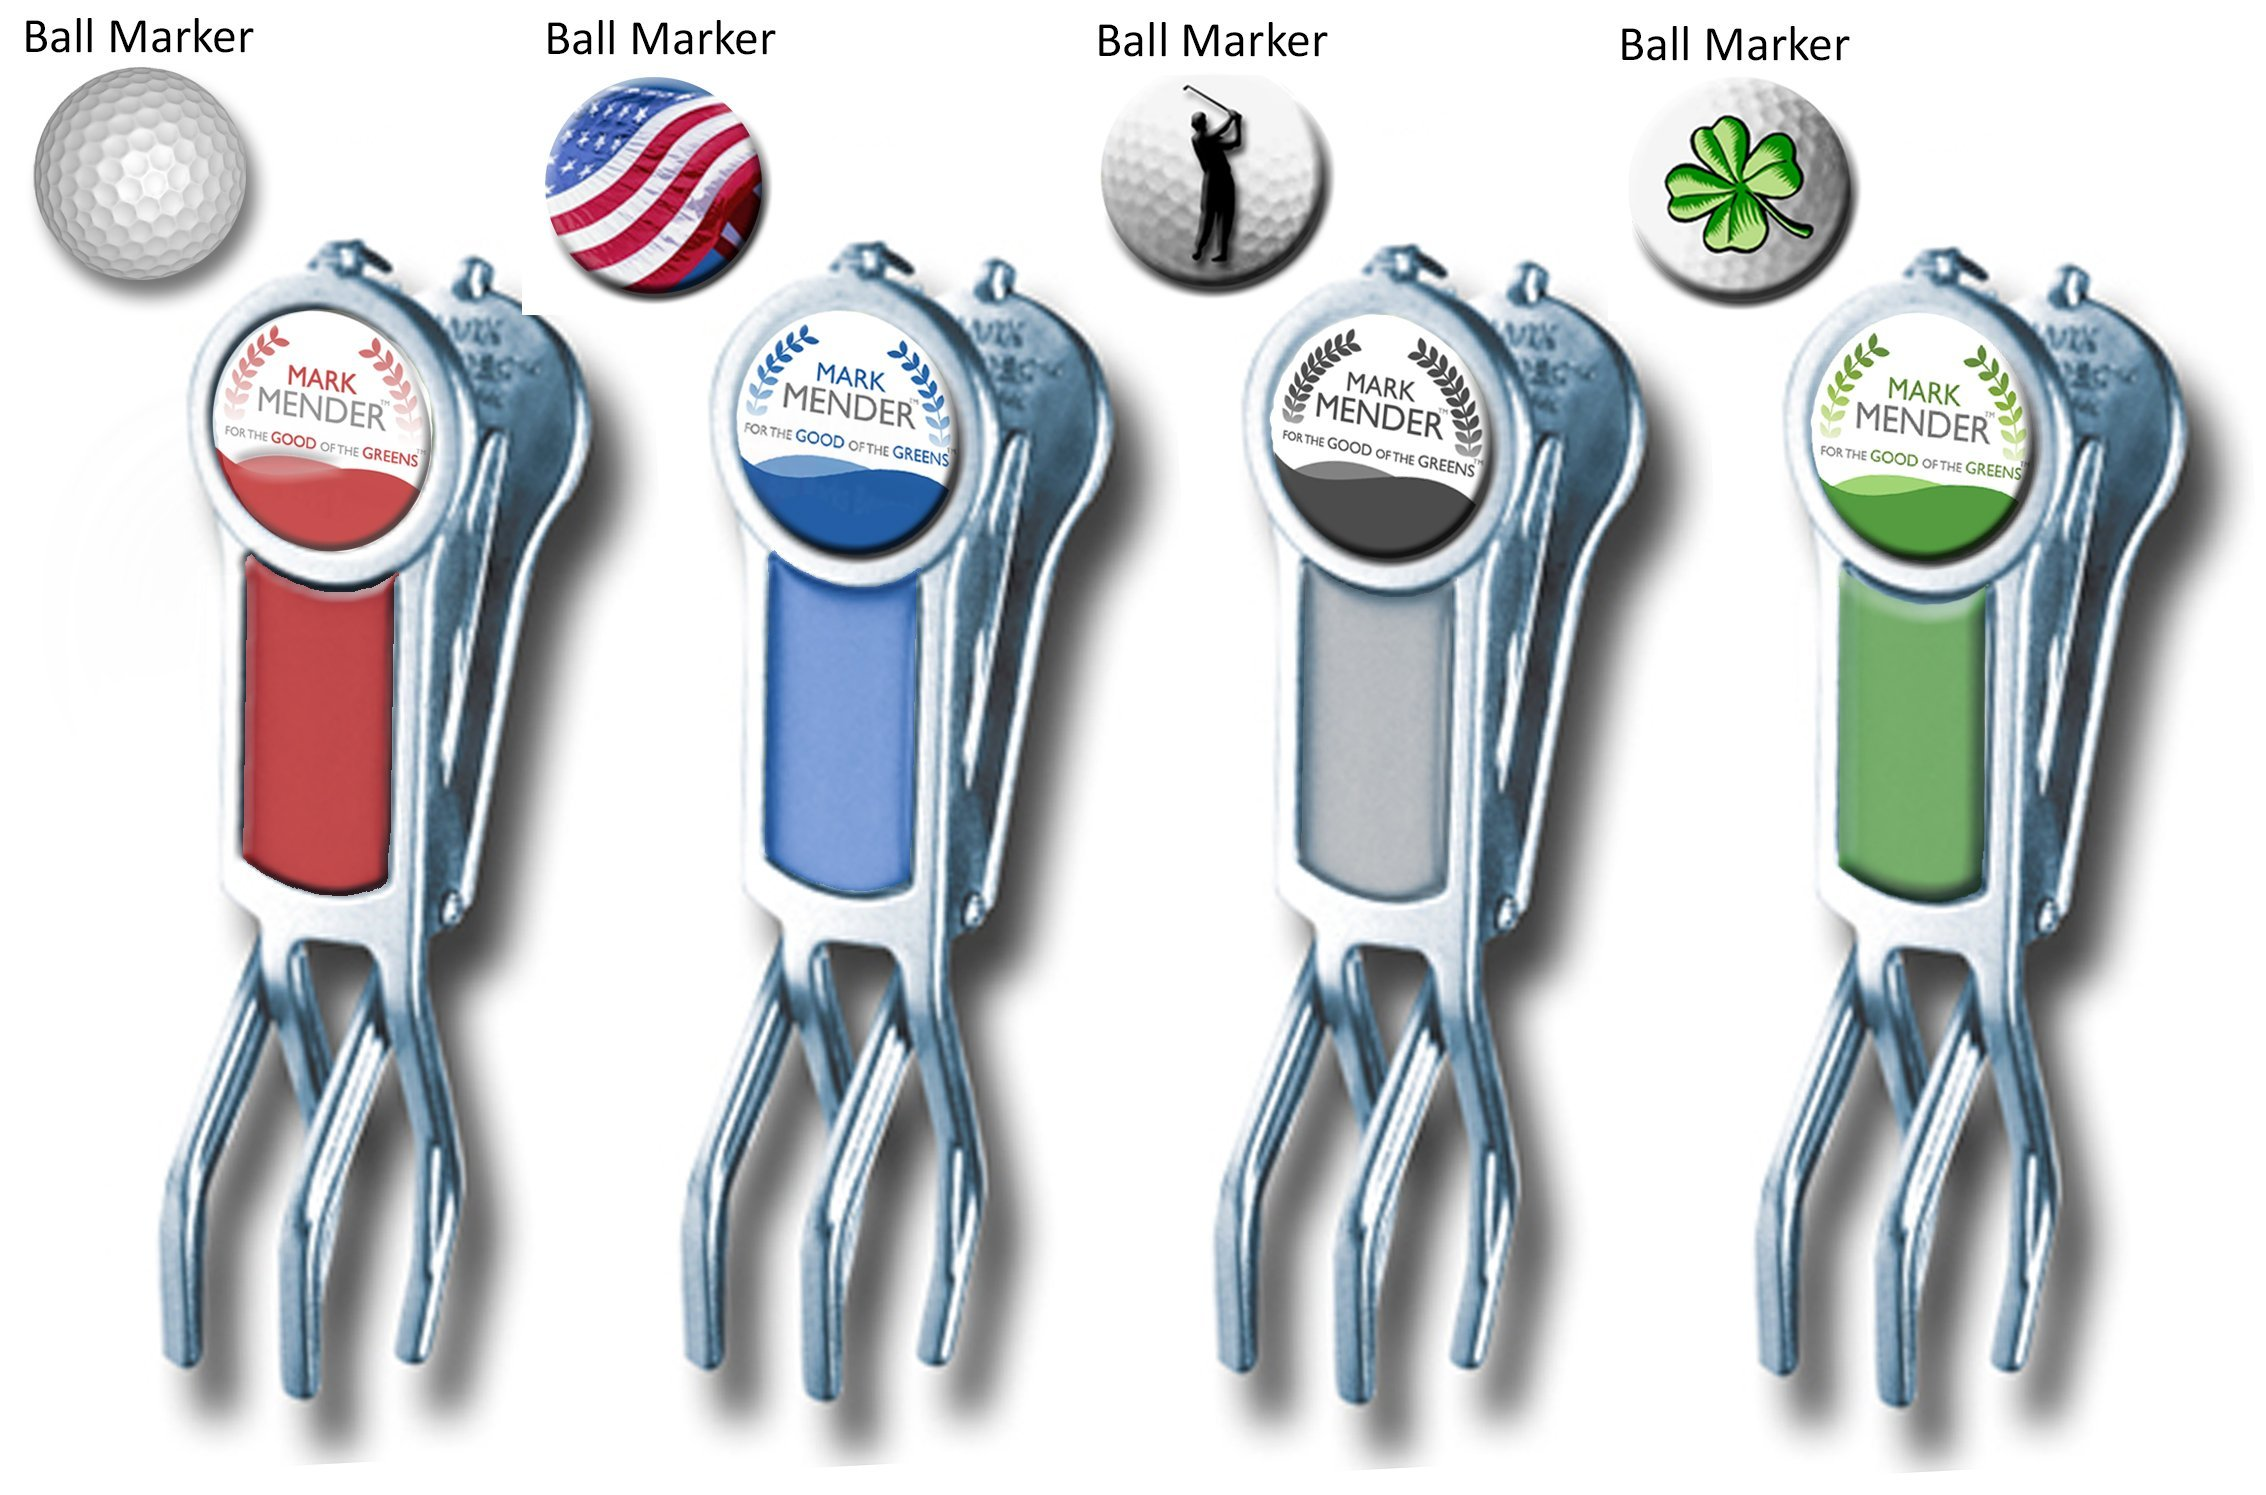 Mark Mender Golf Divot Repair Tool, Cigar Holder & Grip Rest, Repairs Ball Marks The Right Way, Magnetic Ball Marker, and Keeps Putters & Wedges off Wet Grass, Gifts for Him (4-Pack, 1 of Each) by Mark Mender (Image #1)